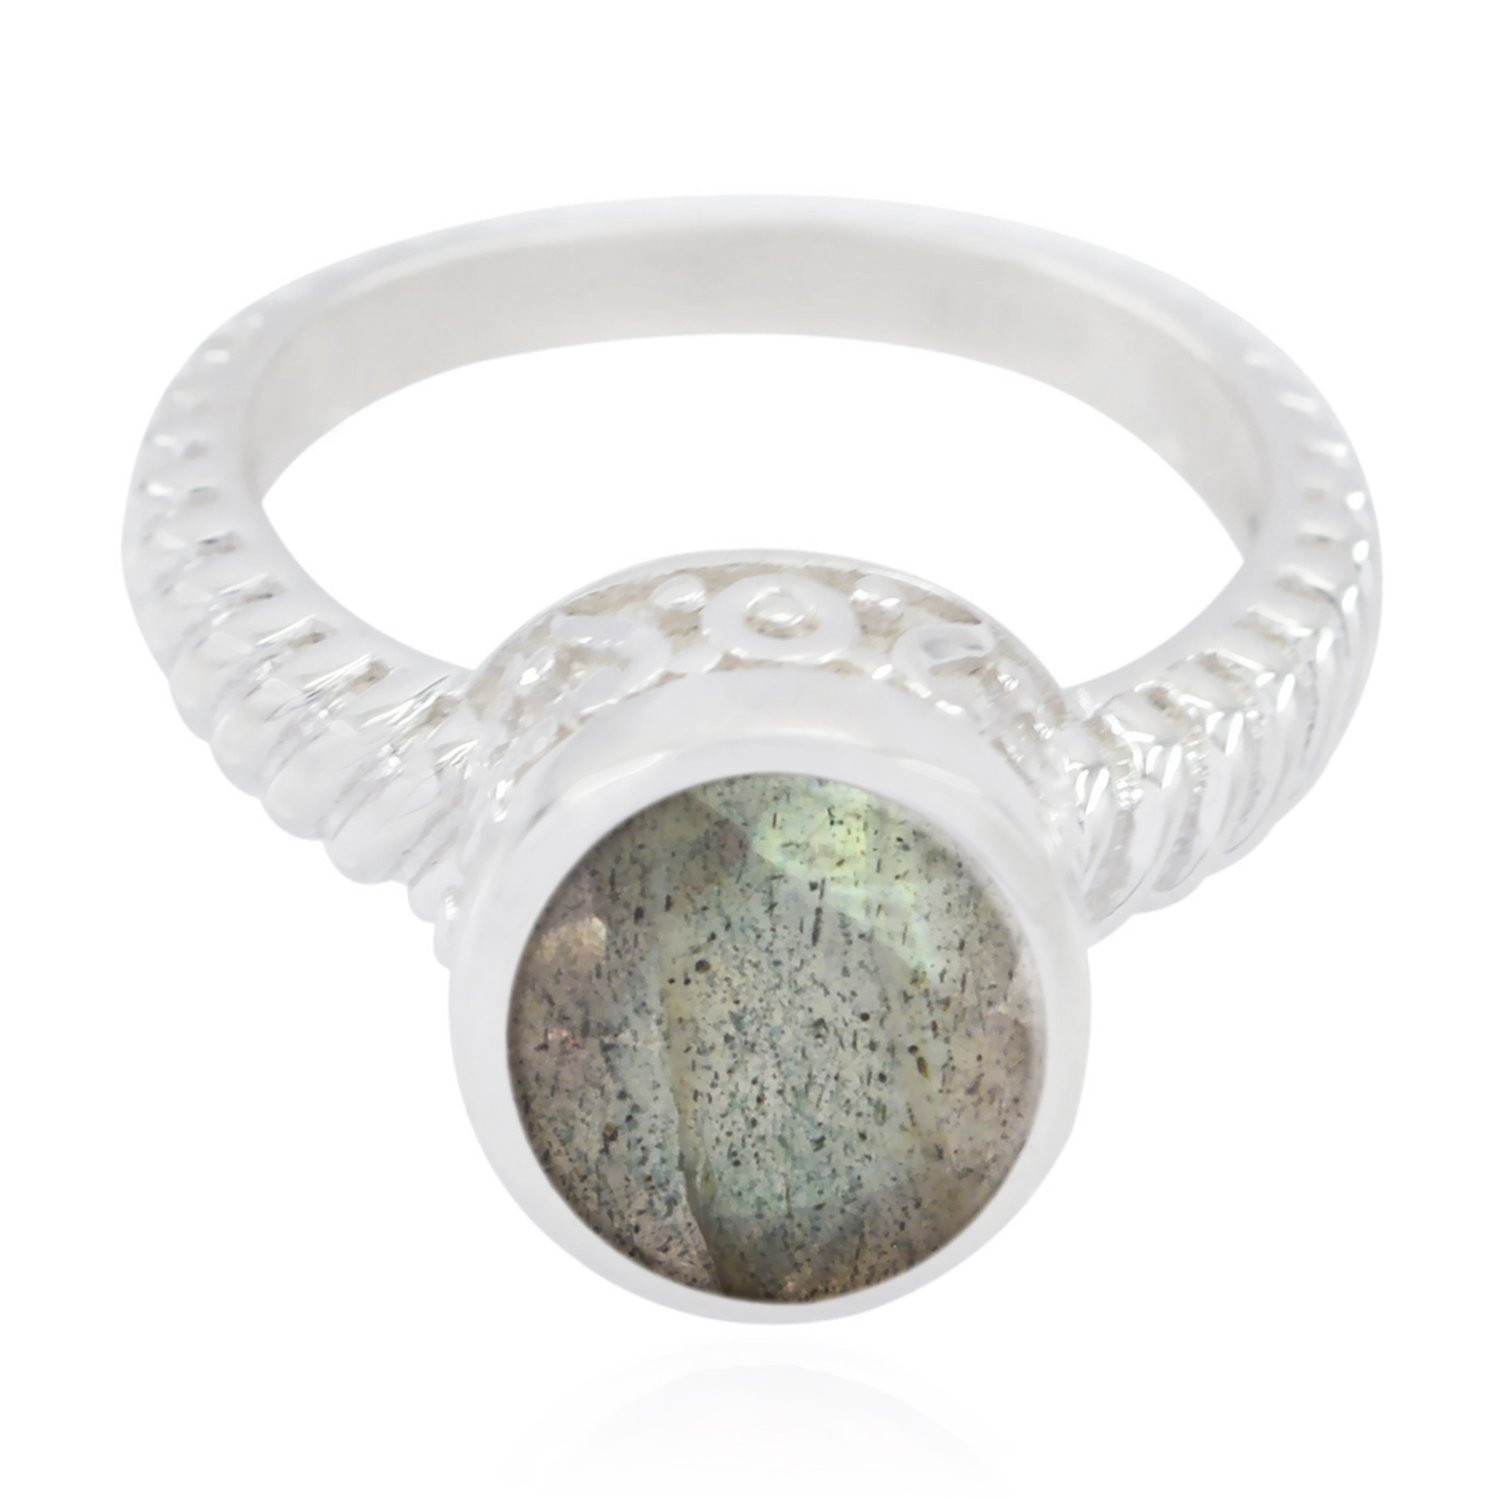 Natural Gemstone Round Faceted Labradorite Ring 925 Sterling Silver Grey Labradorite Natural Gemstone Ring jents Jewelry fine Item Gift for Mothers Day Knot Ring